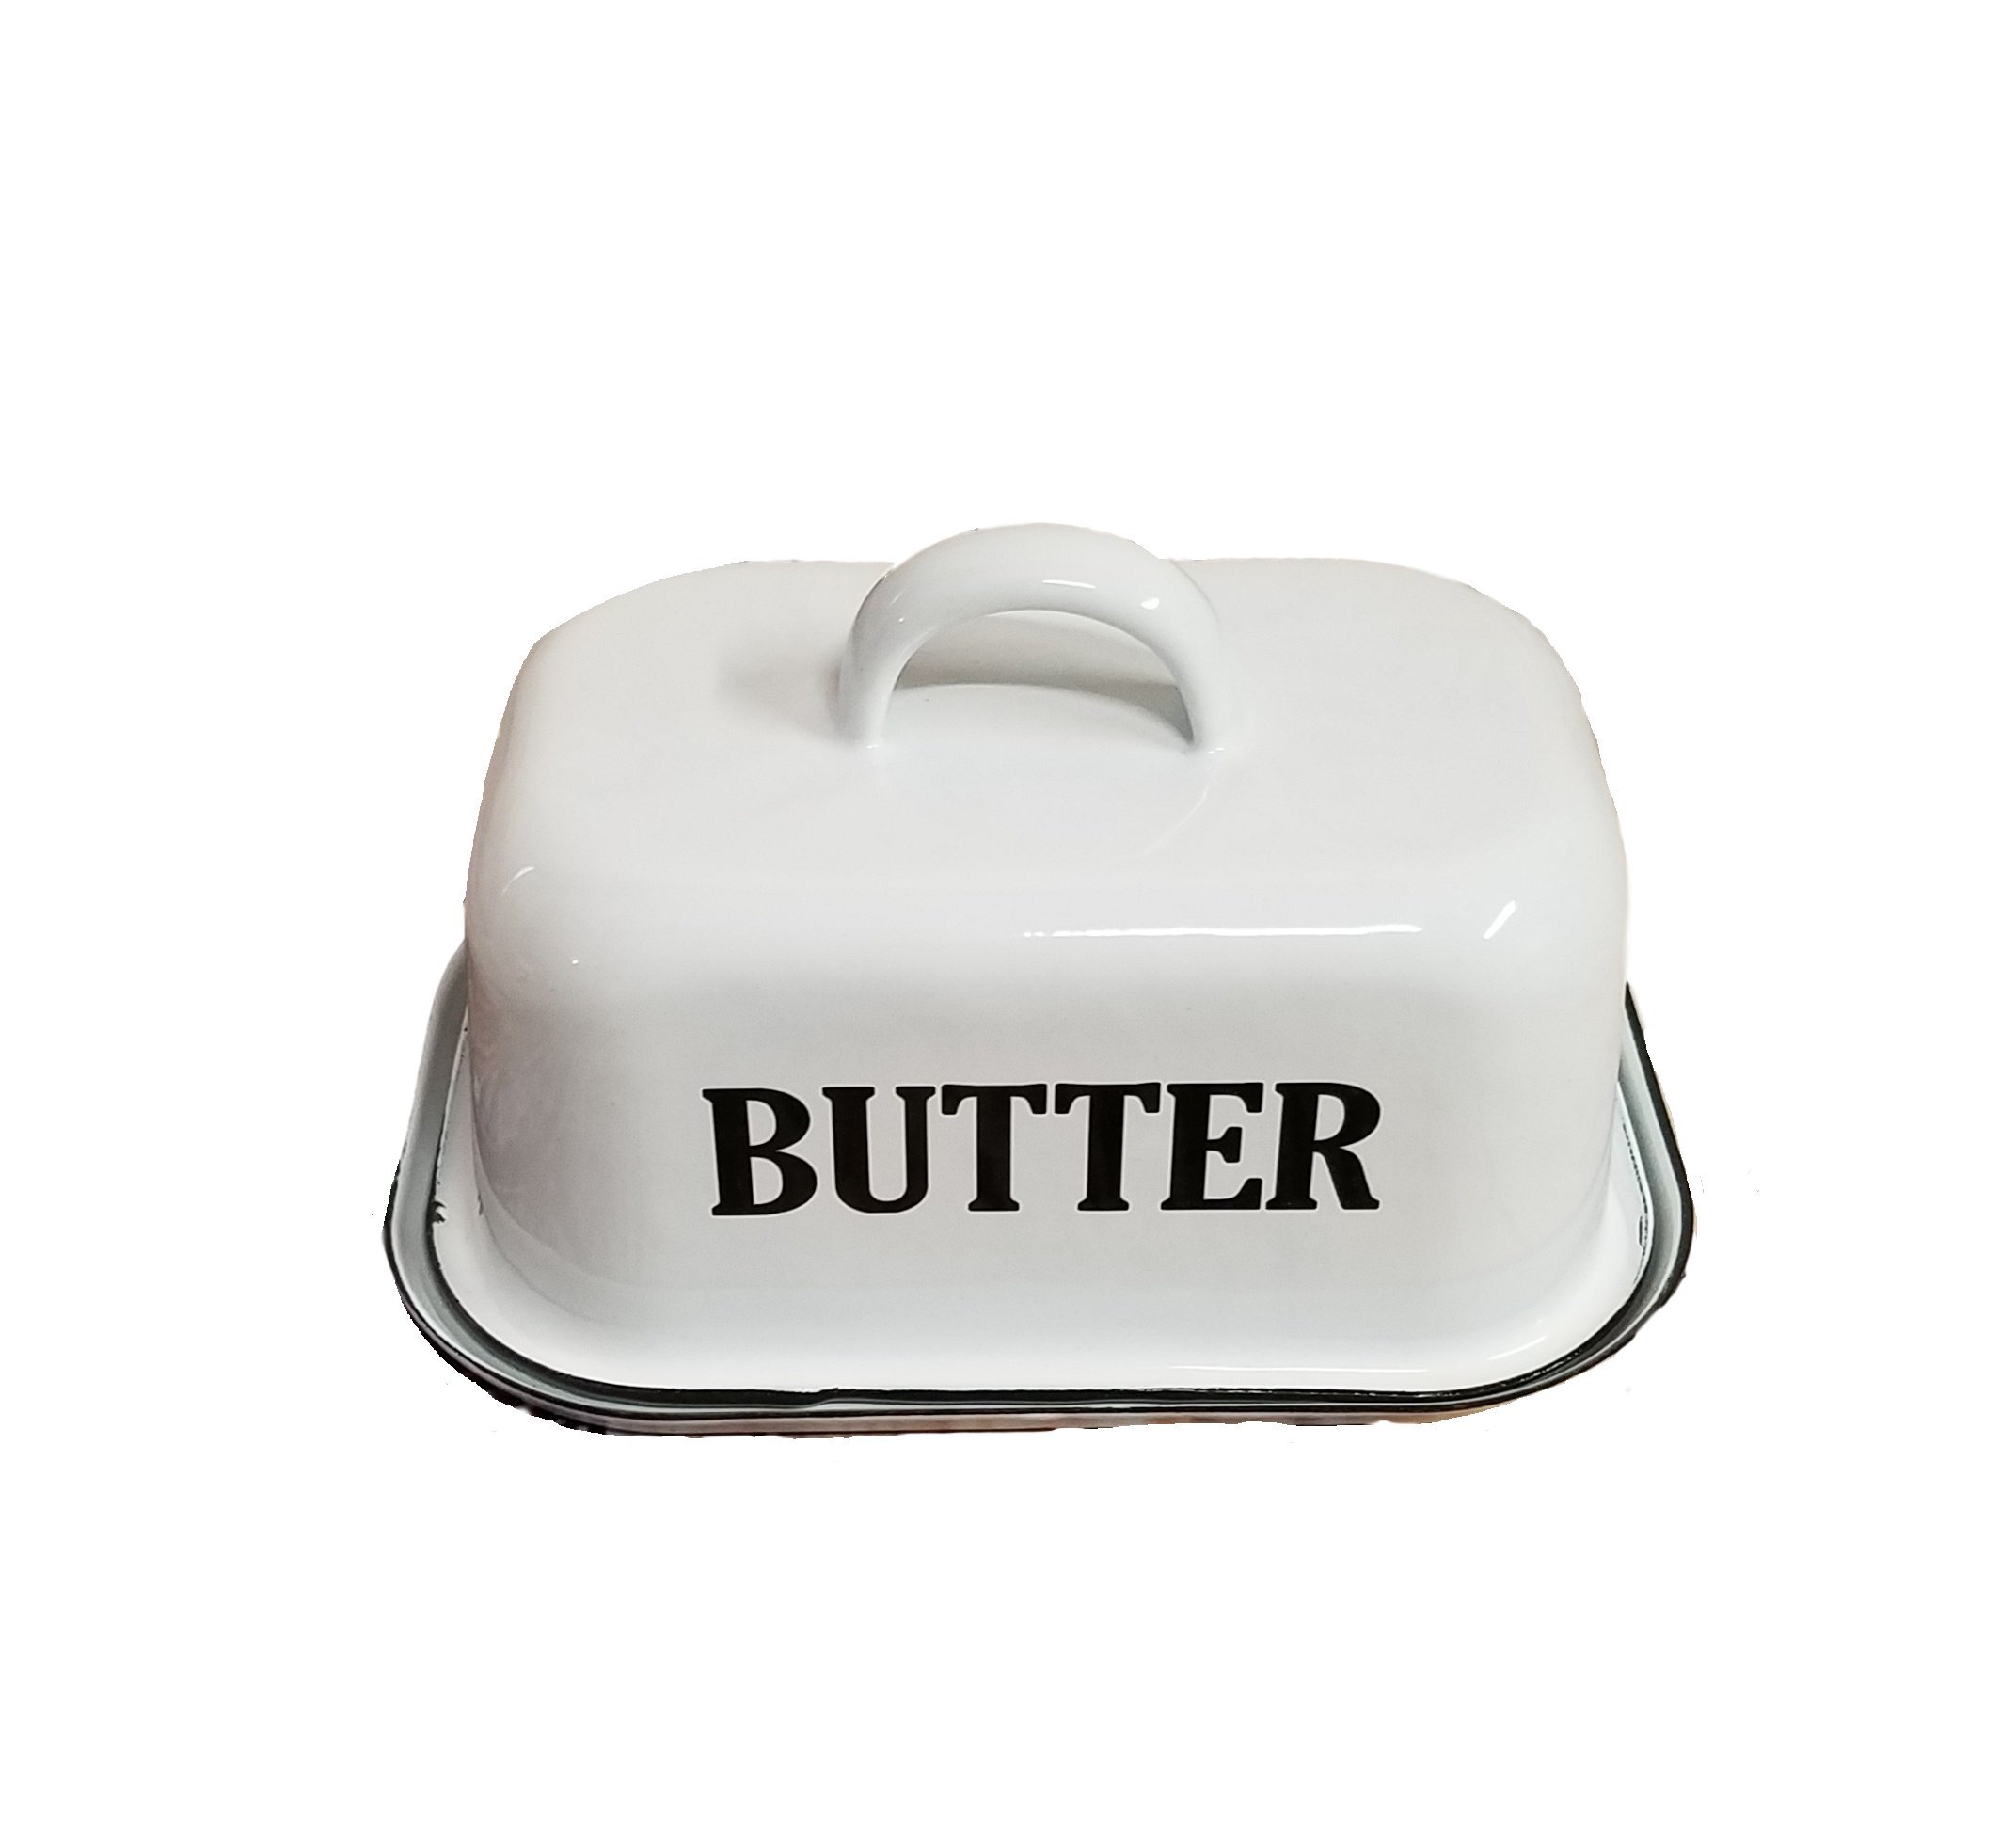 Vintage White Enamel Butter Dish with Lid